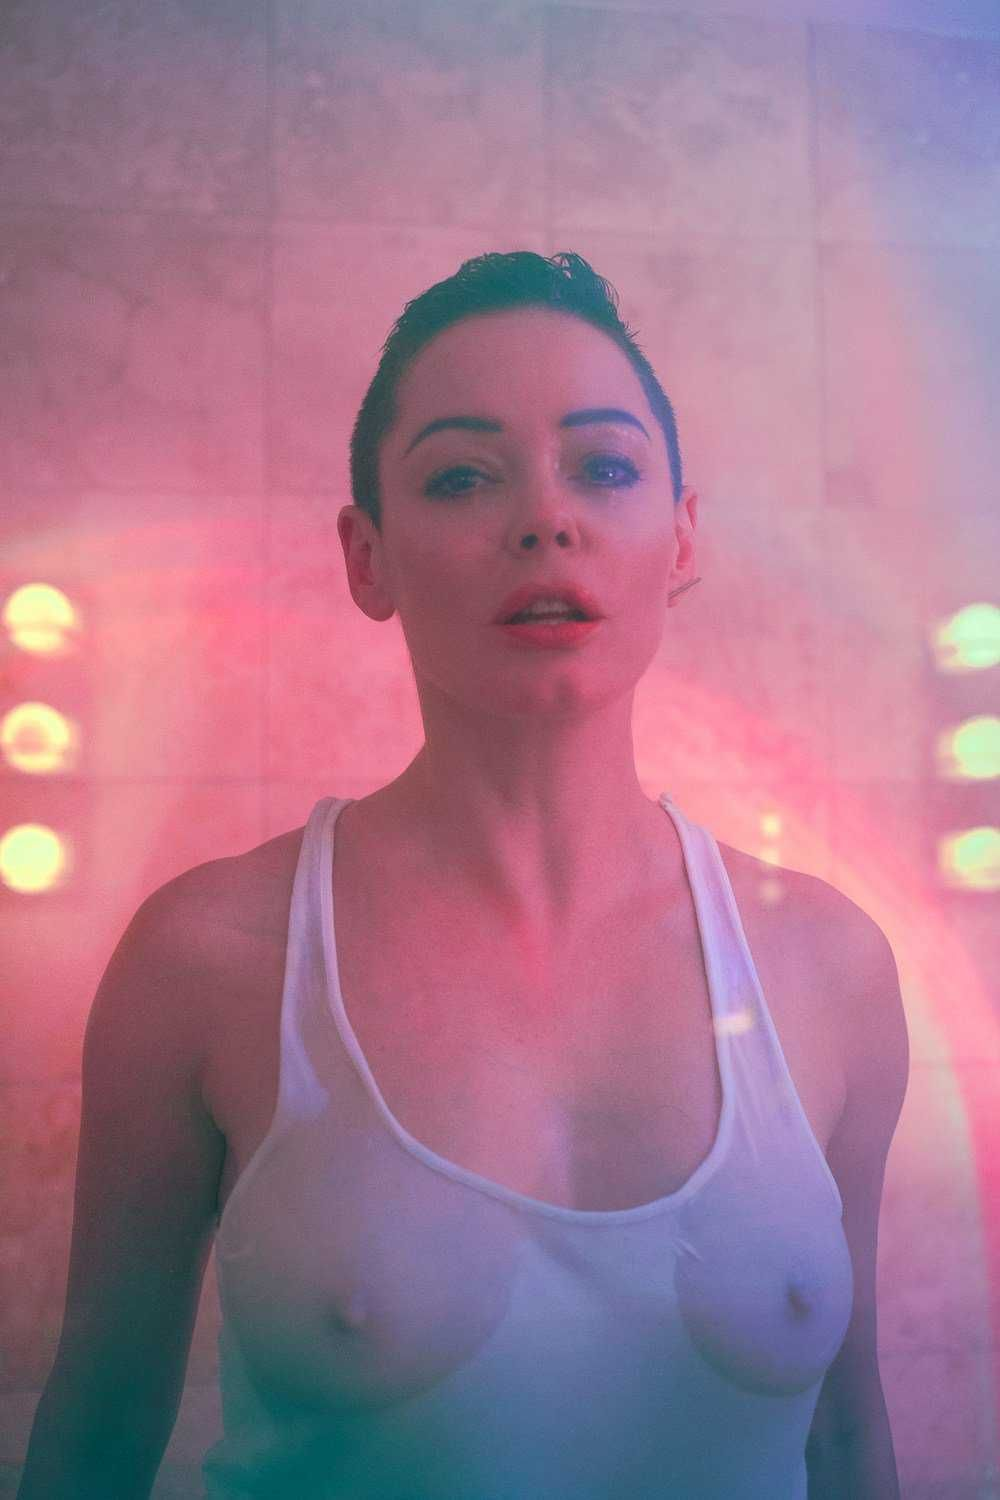 Rose+McGowan+in+Posture+Magazine+Photoshoot+2017 more @ http://www ...